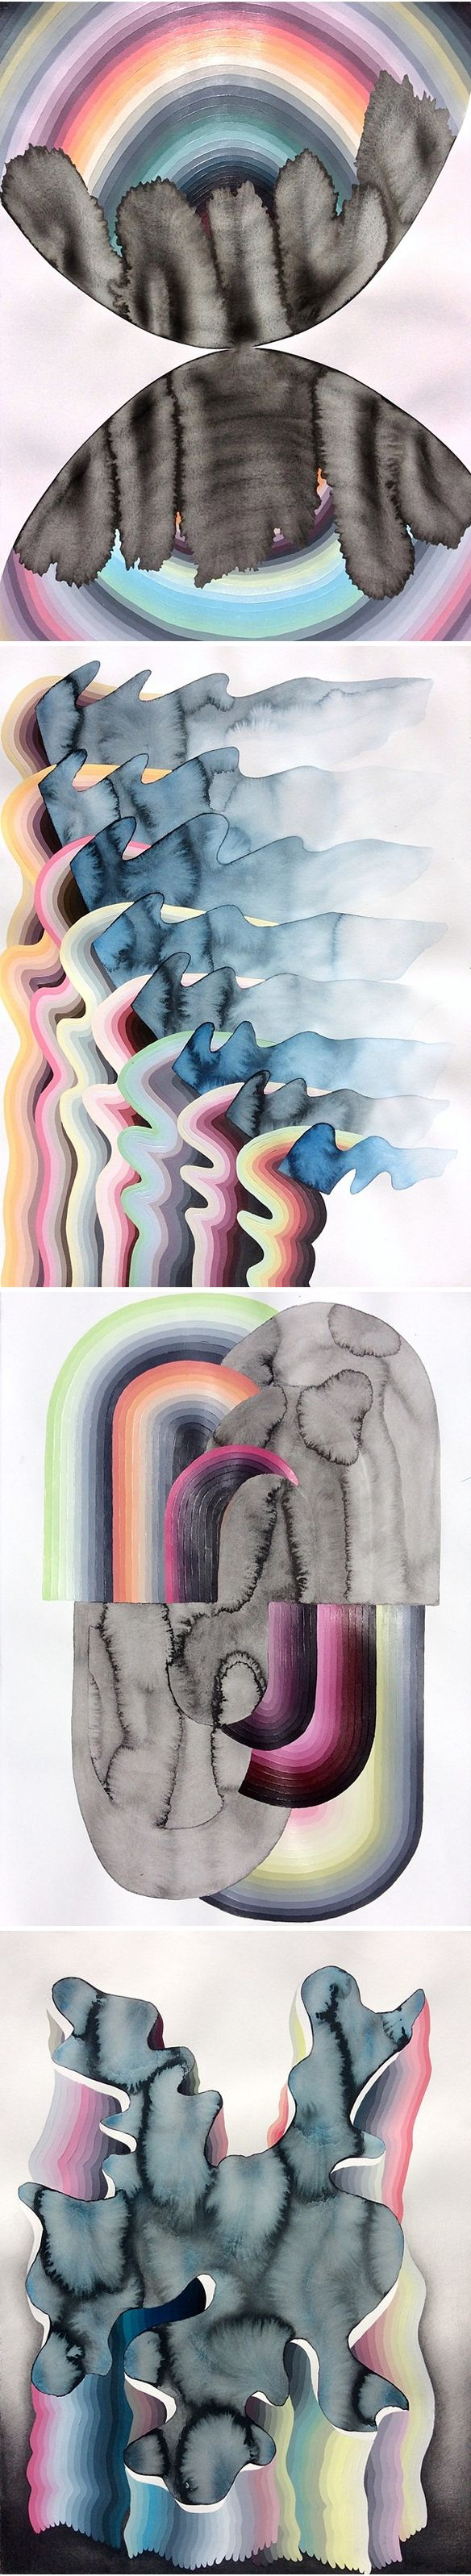 paintings by justin margitich